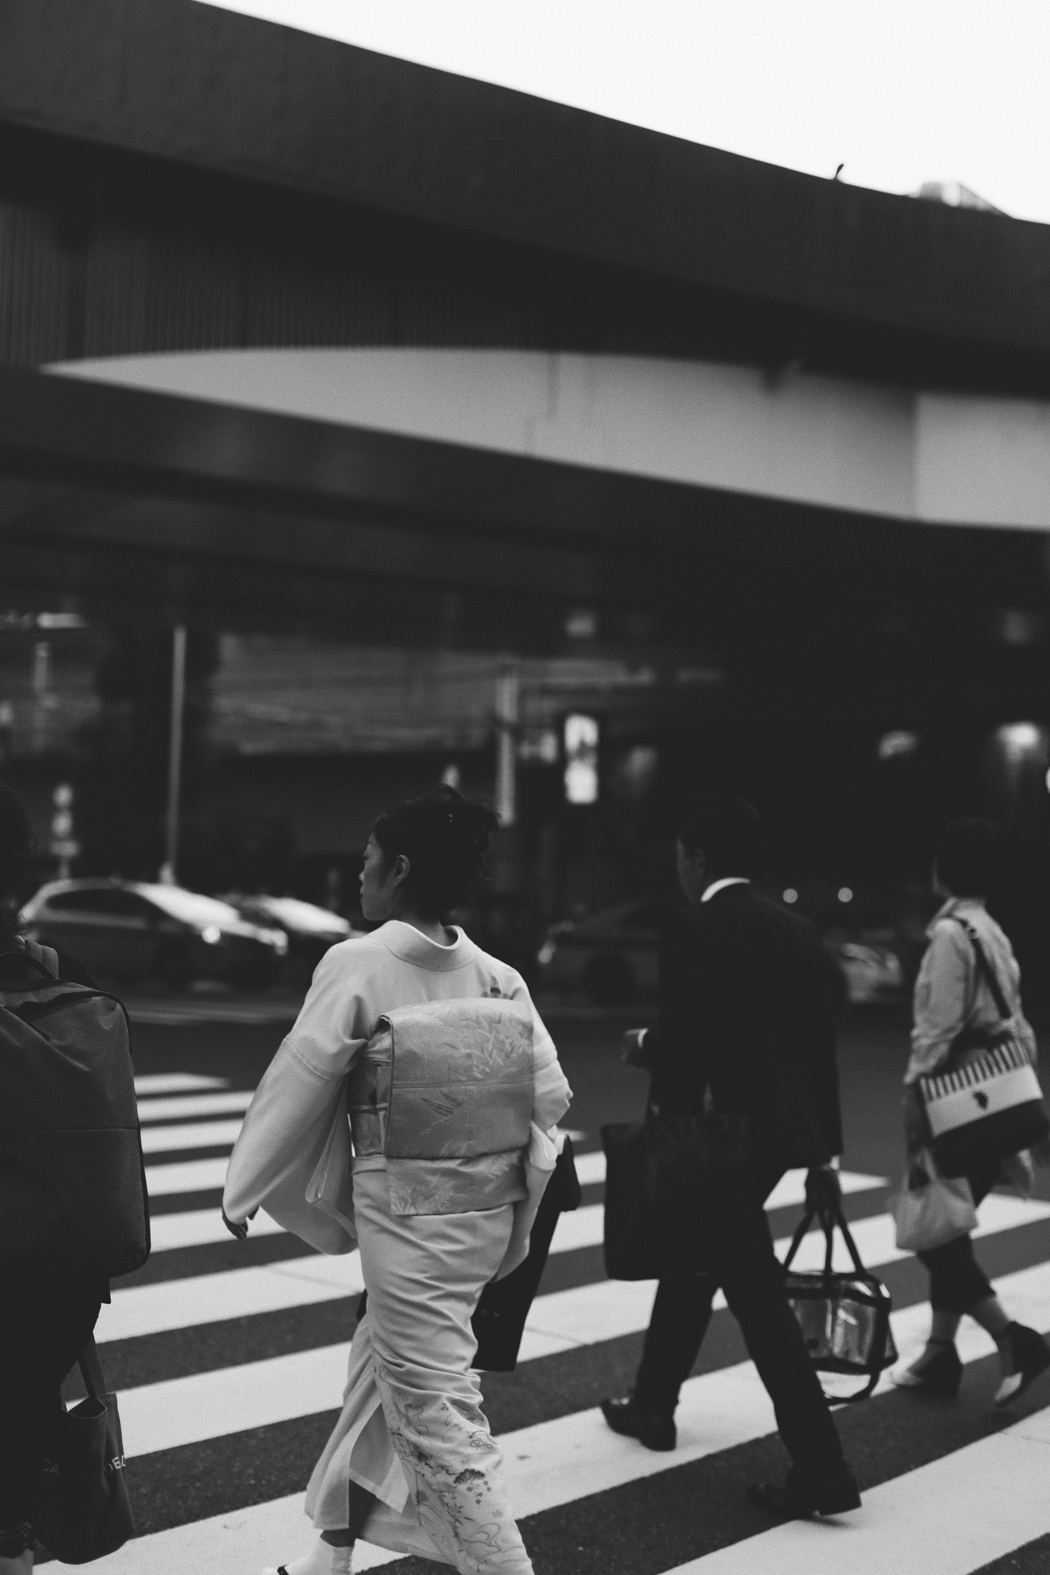 Tokyo: A Visual Diary in Black and White - by Fiona Dinkelbach